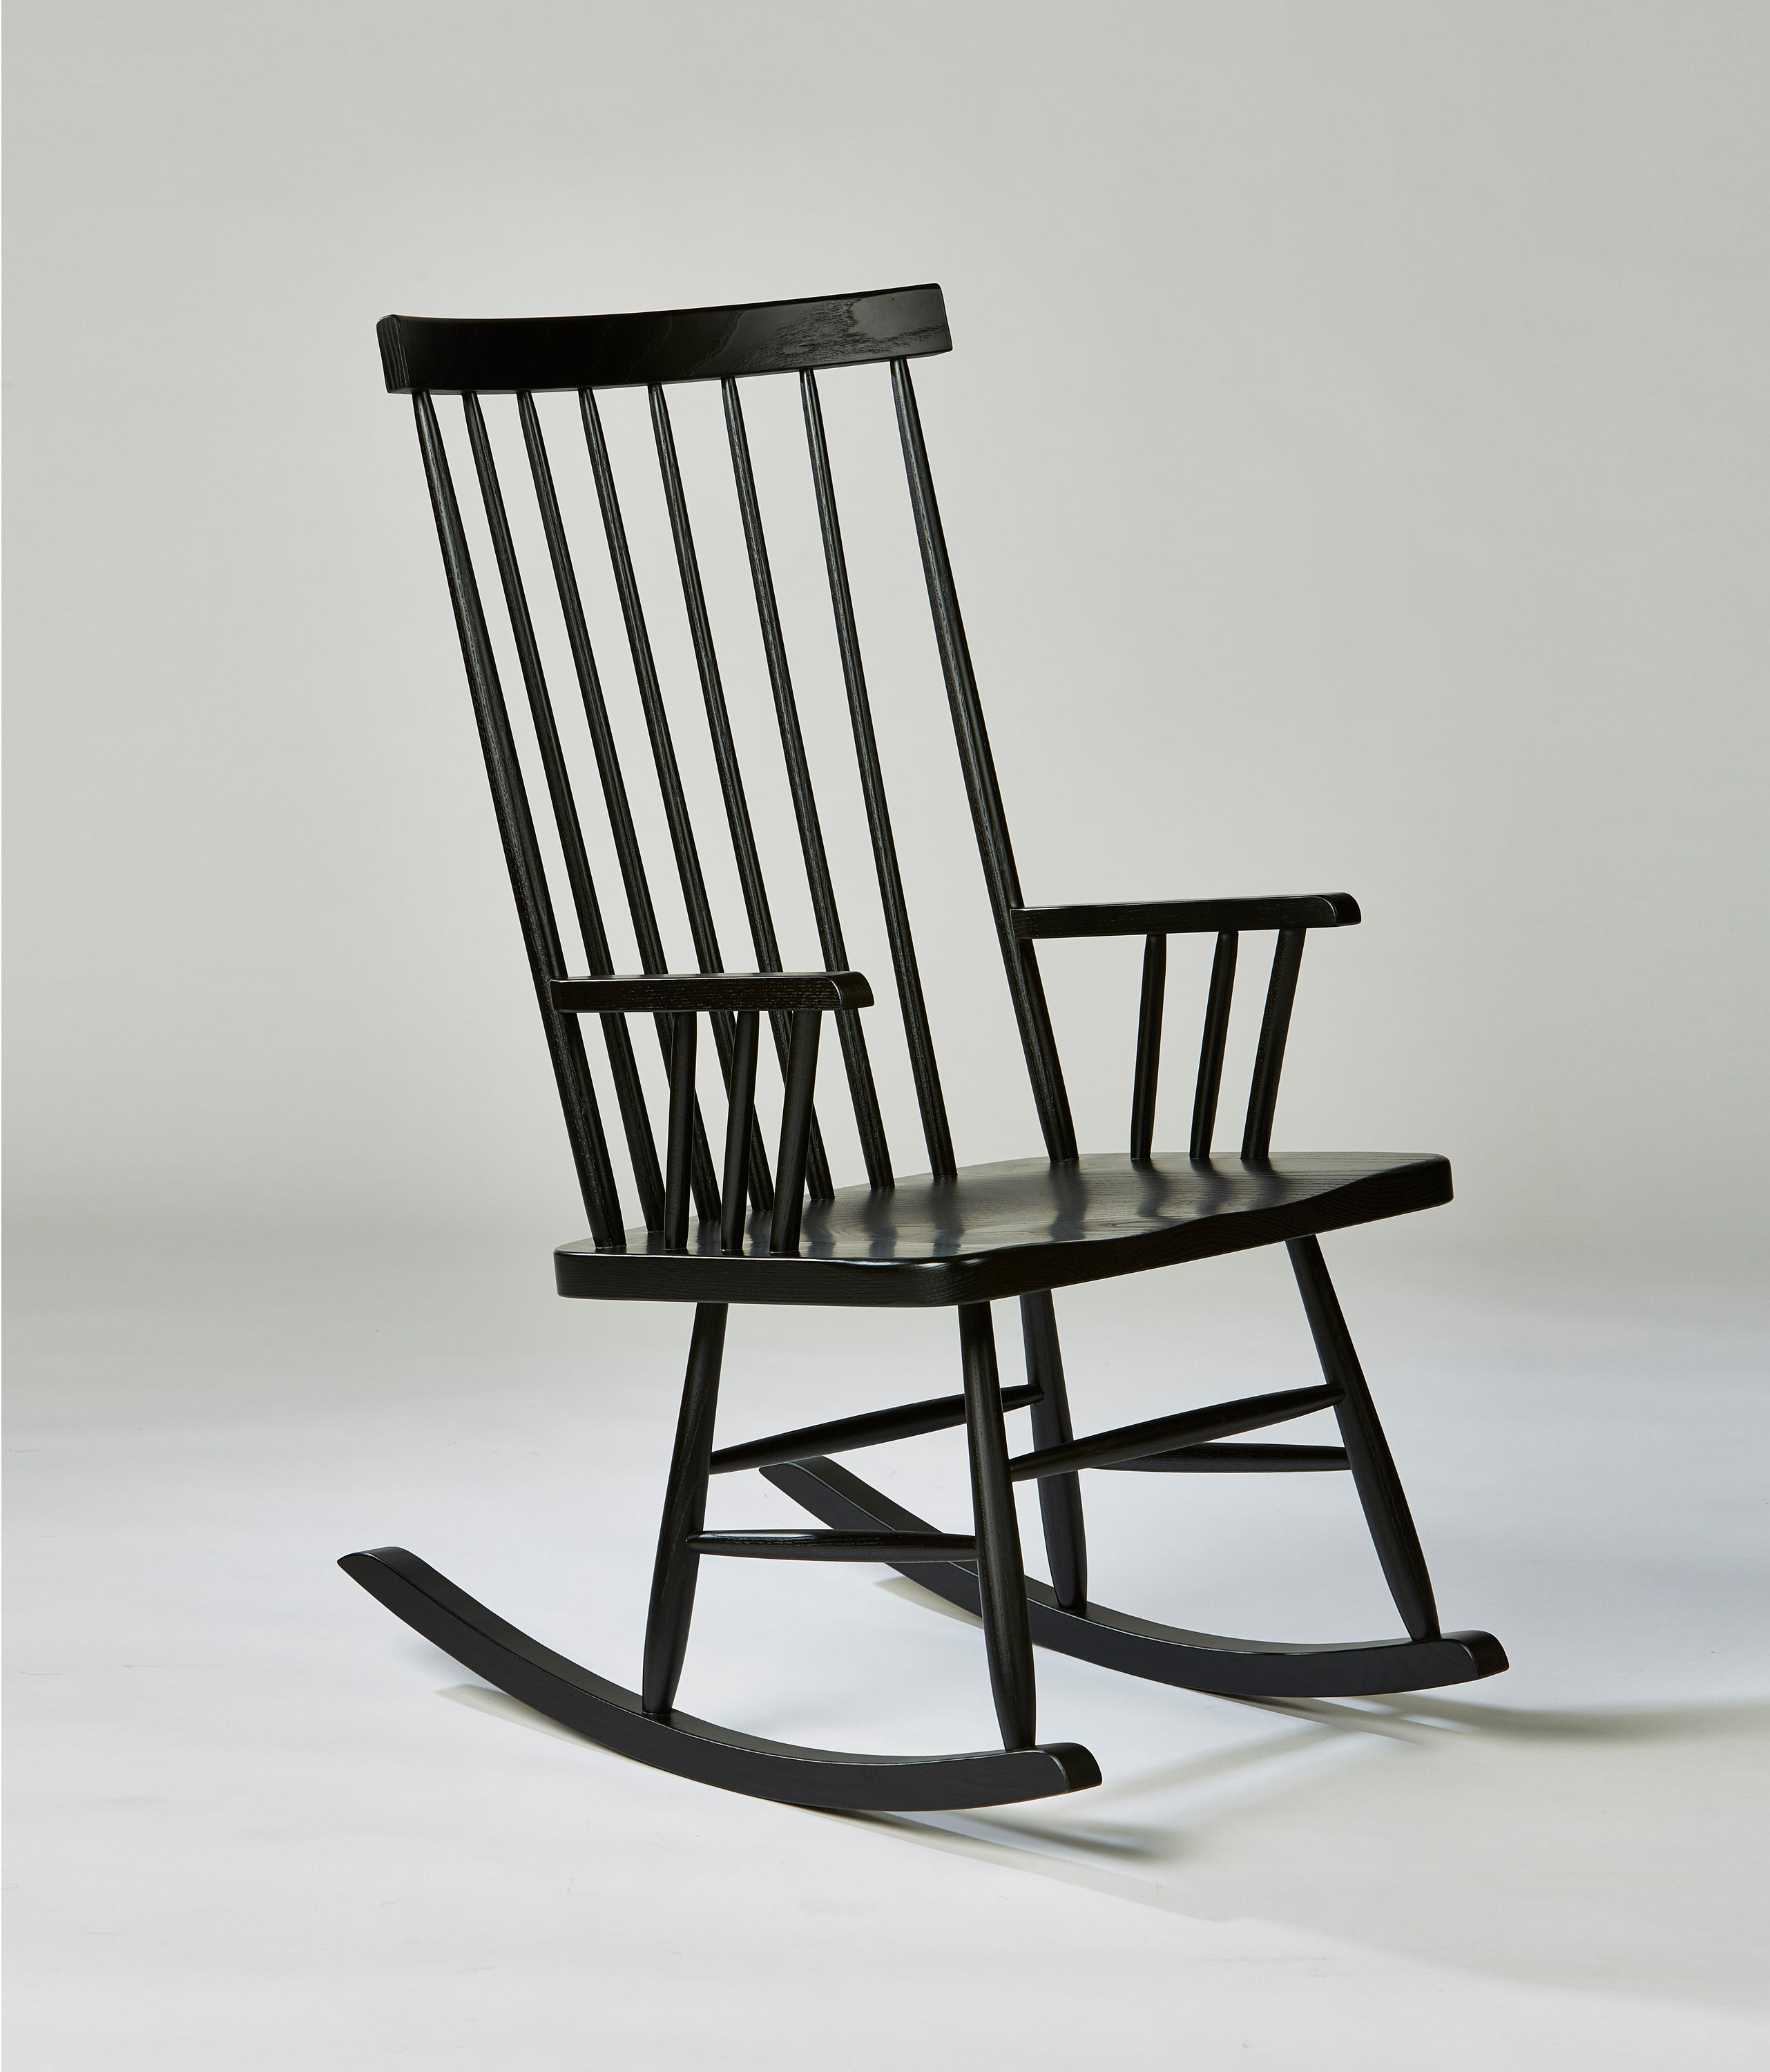 Classic Rocking Chair & designer furniture | Architonic